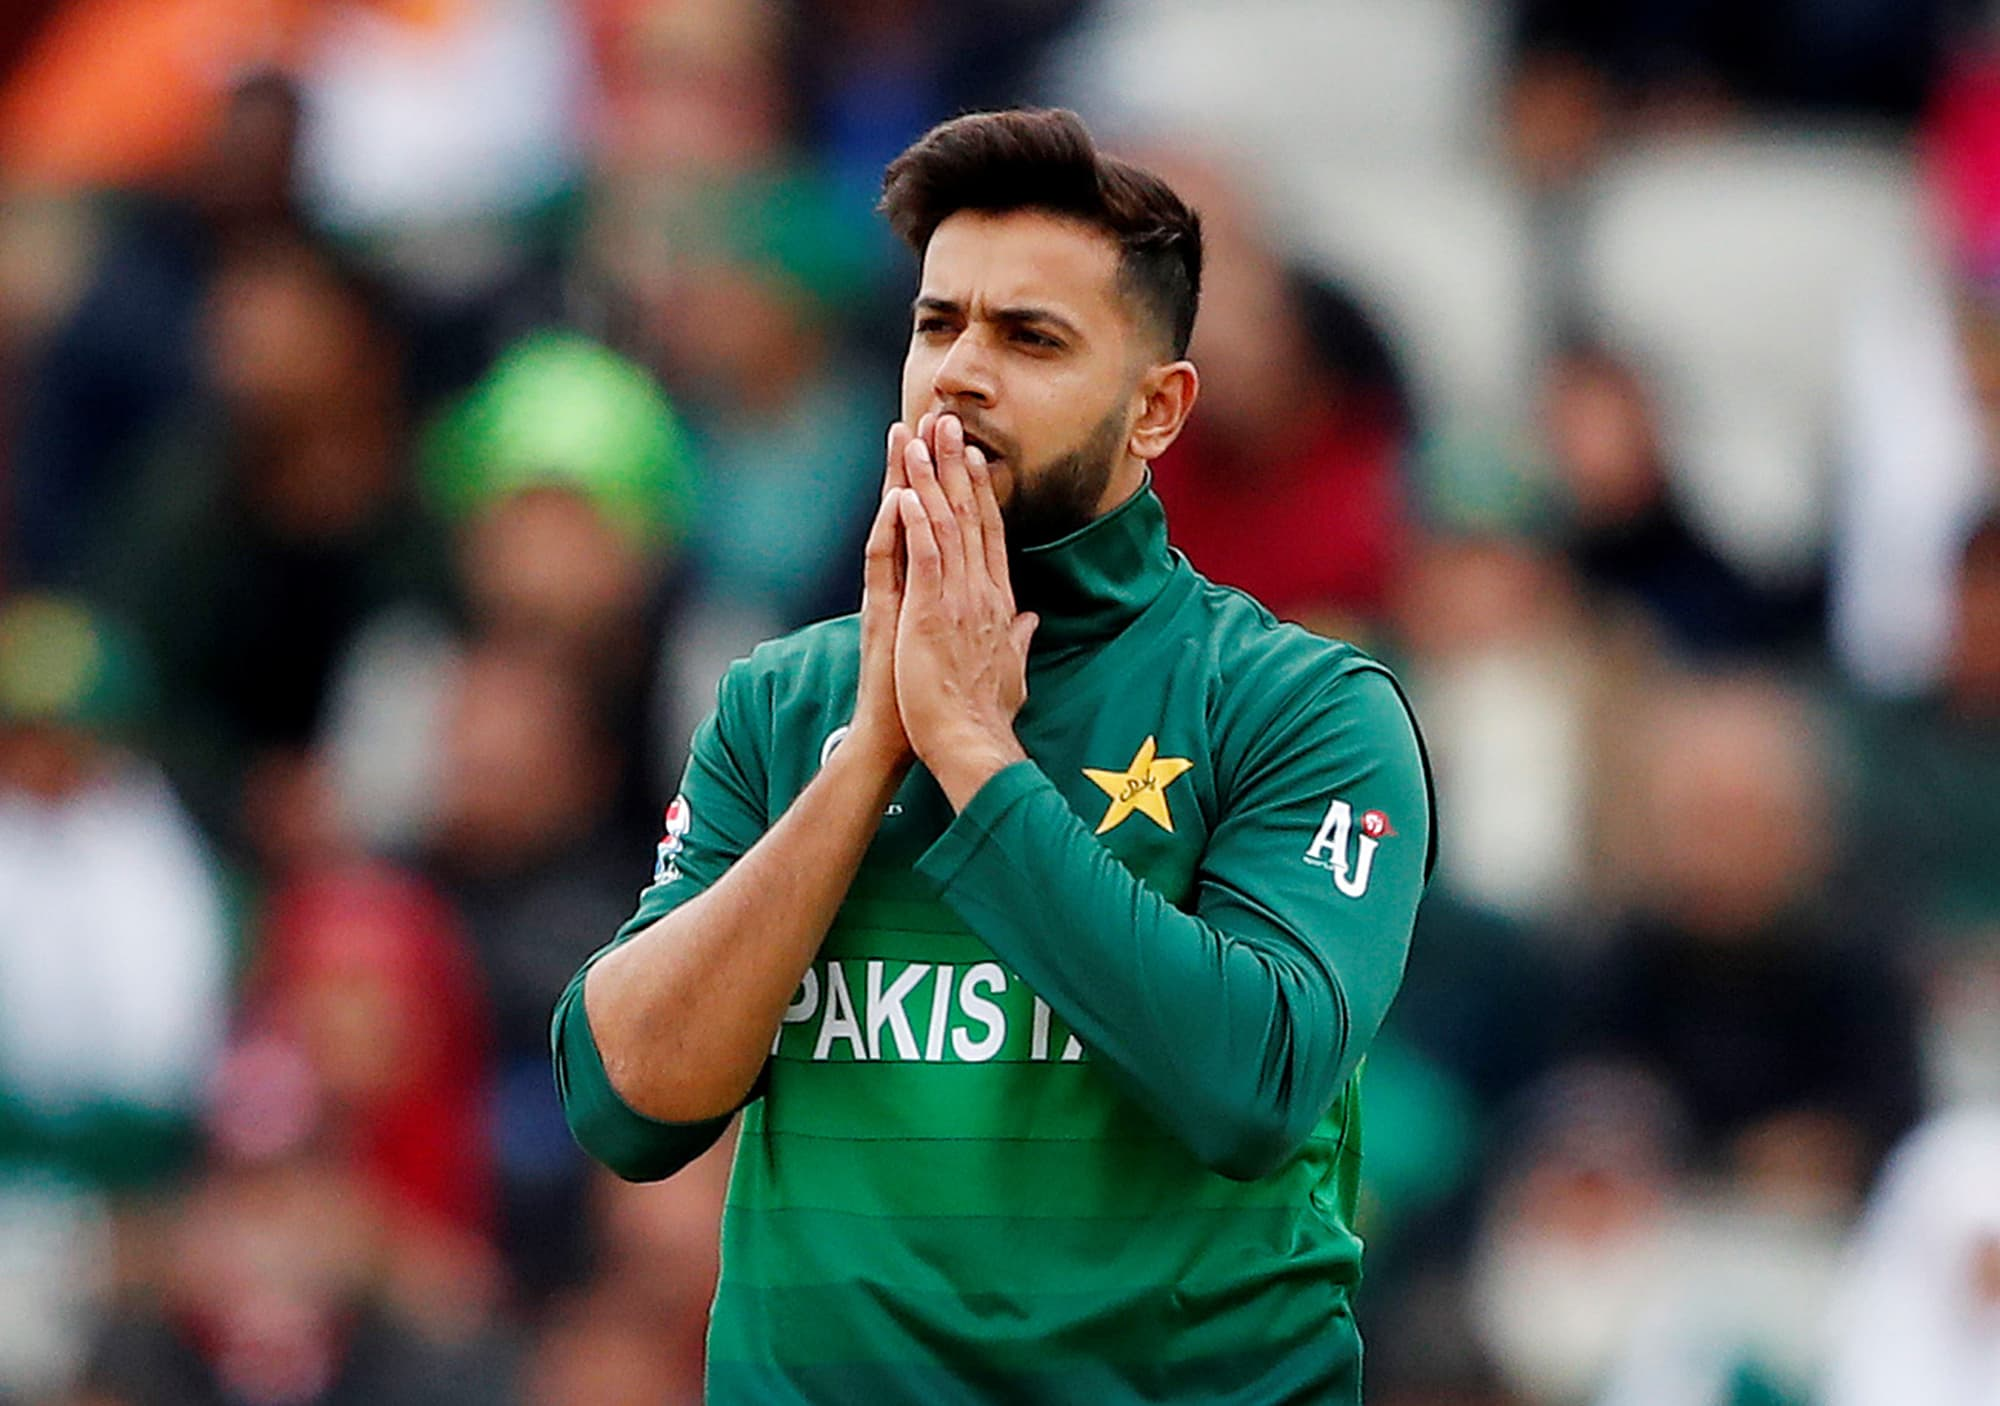 Imad Wasim reacts after bowling. ─ Reuters